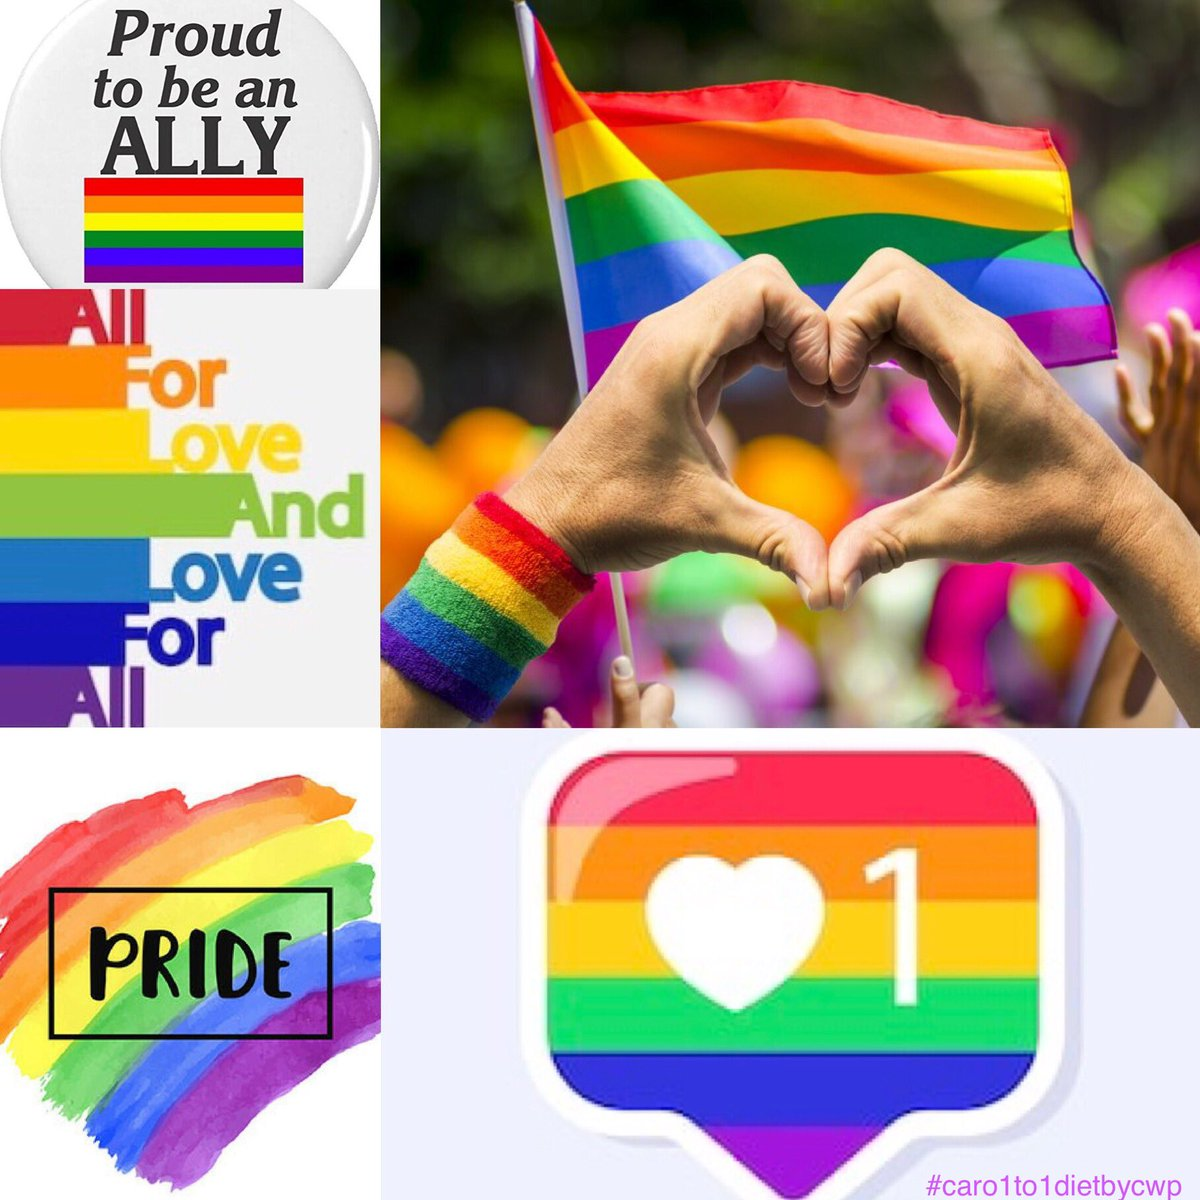 🏳️‍🌈Happy Pride Month!🏳️‍🌈   #loveislove🌈 #pride #june2020 #supportlgbt #proudally #allforlove #loveforall https://t.co/XXLX7q41f0